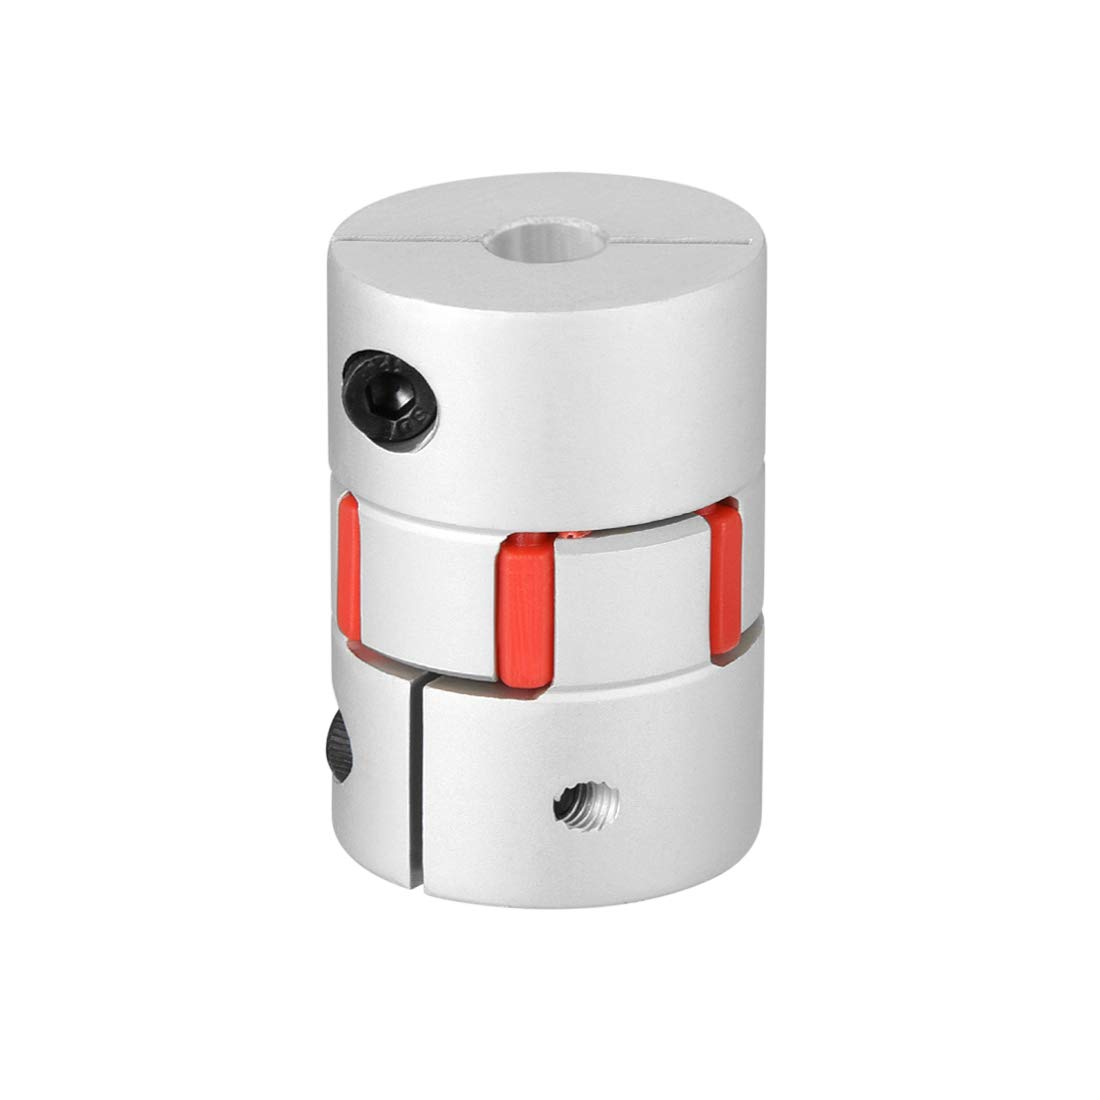 uxcell Shaft Coupling 6mm to 6mm Bore L30xD20 Flexible Coupler Joint for Servo Stepped Motor